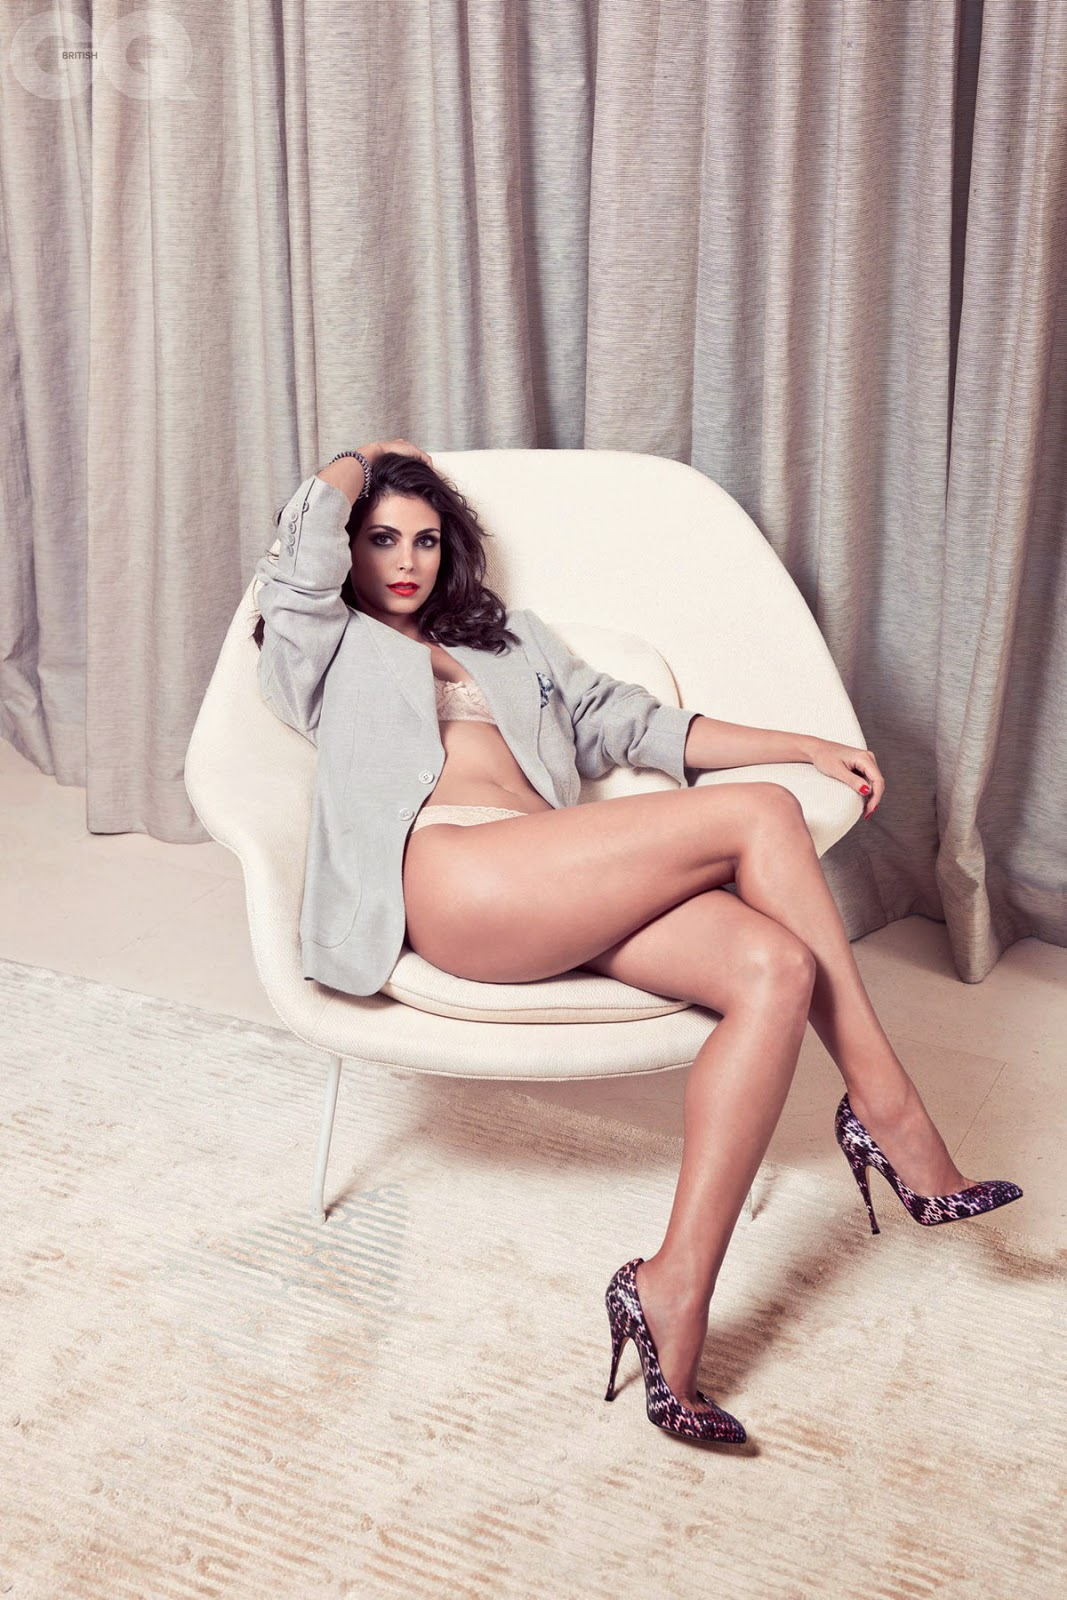 Morena Baccarin in a leggy pose